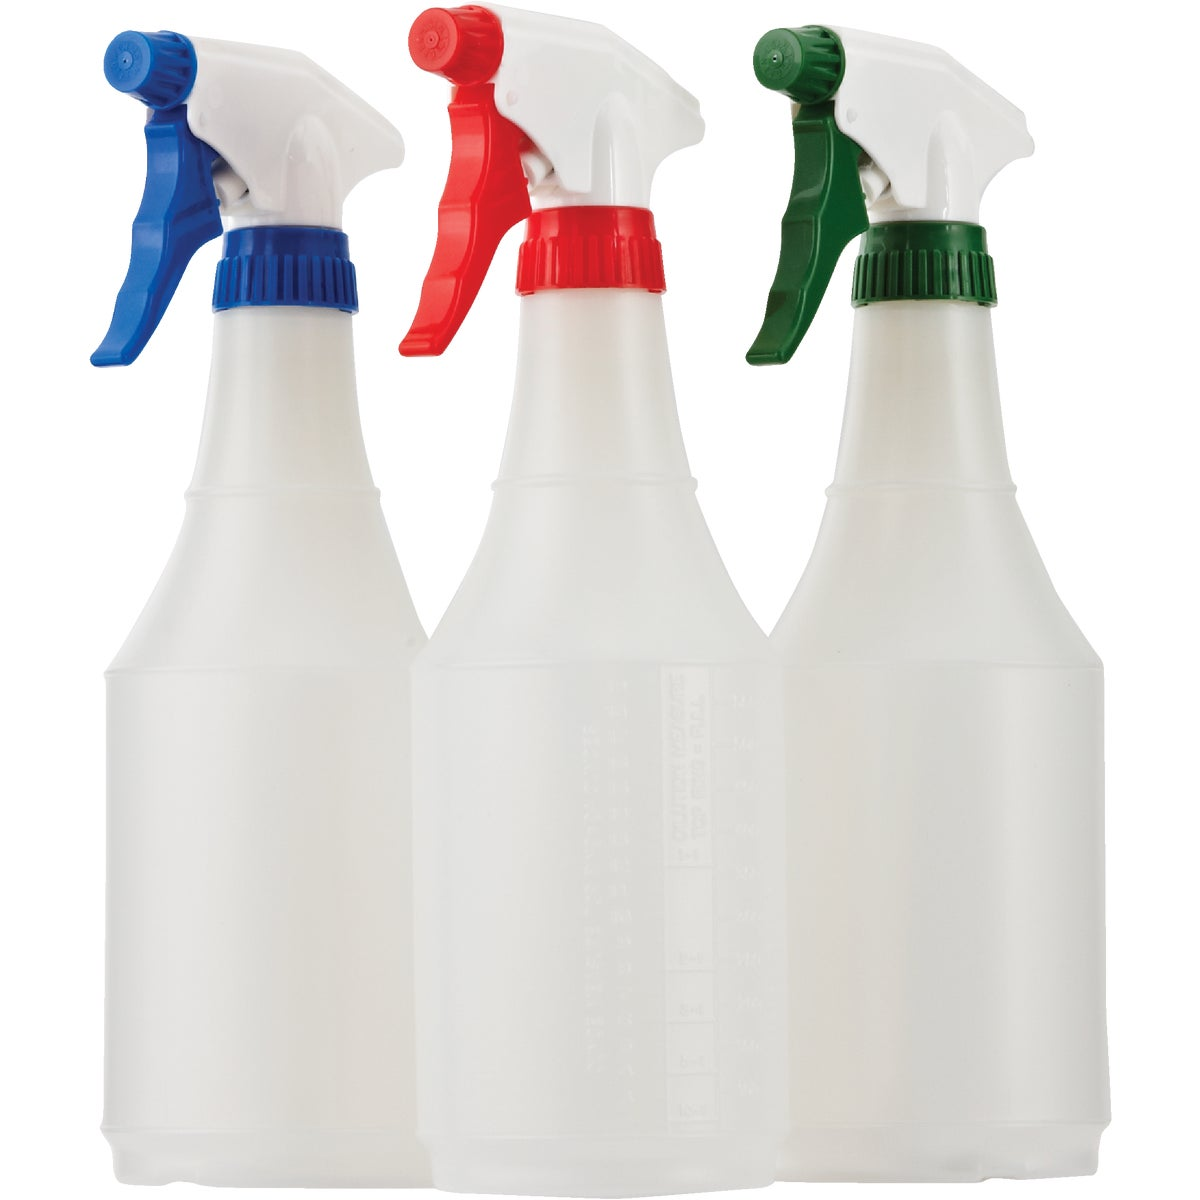 24OZ 3PK SPRAY BOTTLES